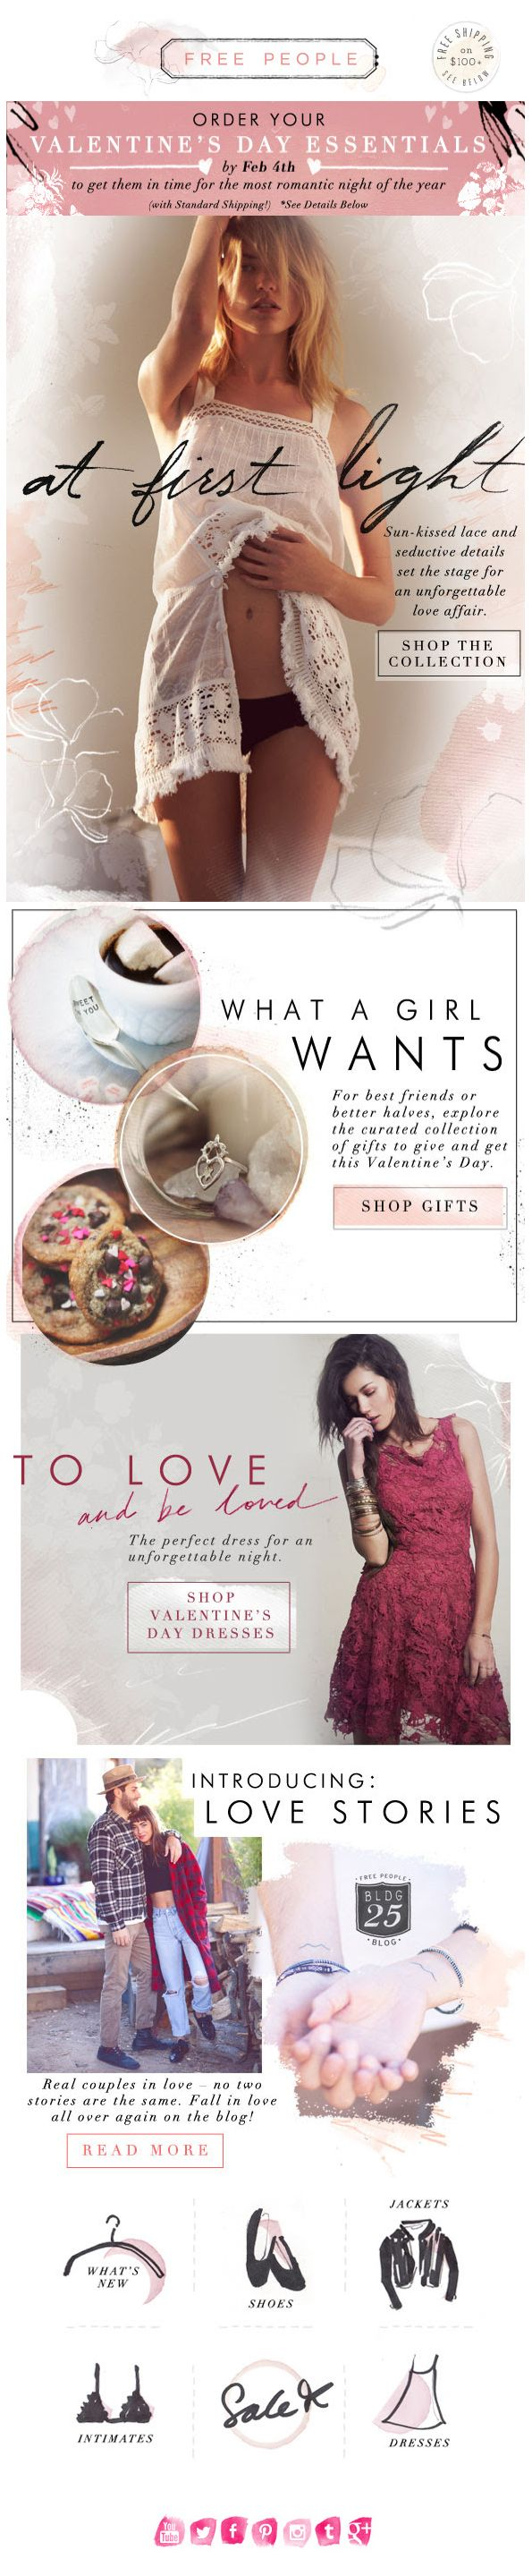 Free People : V-Day